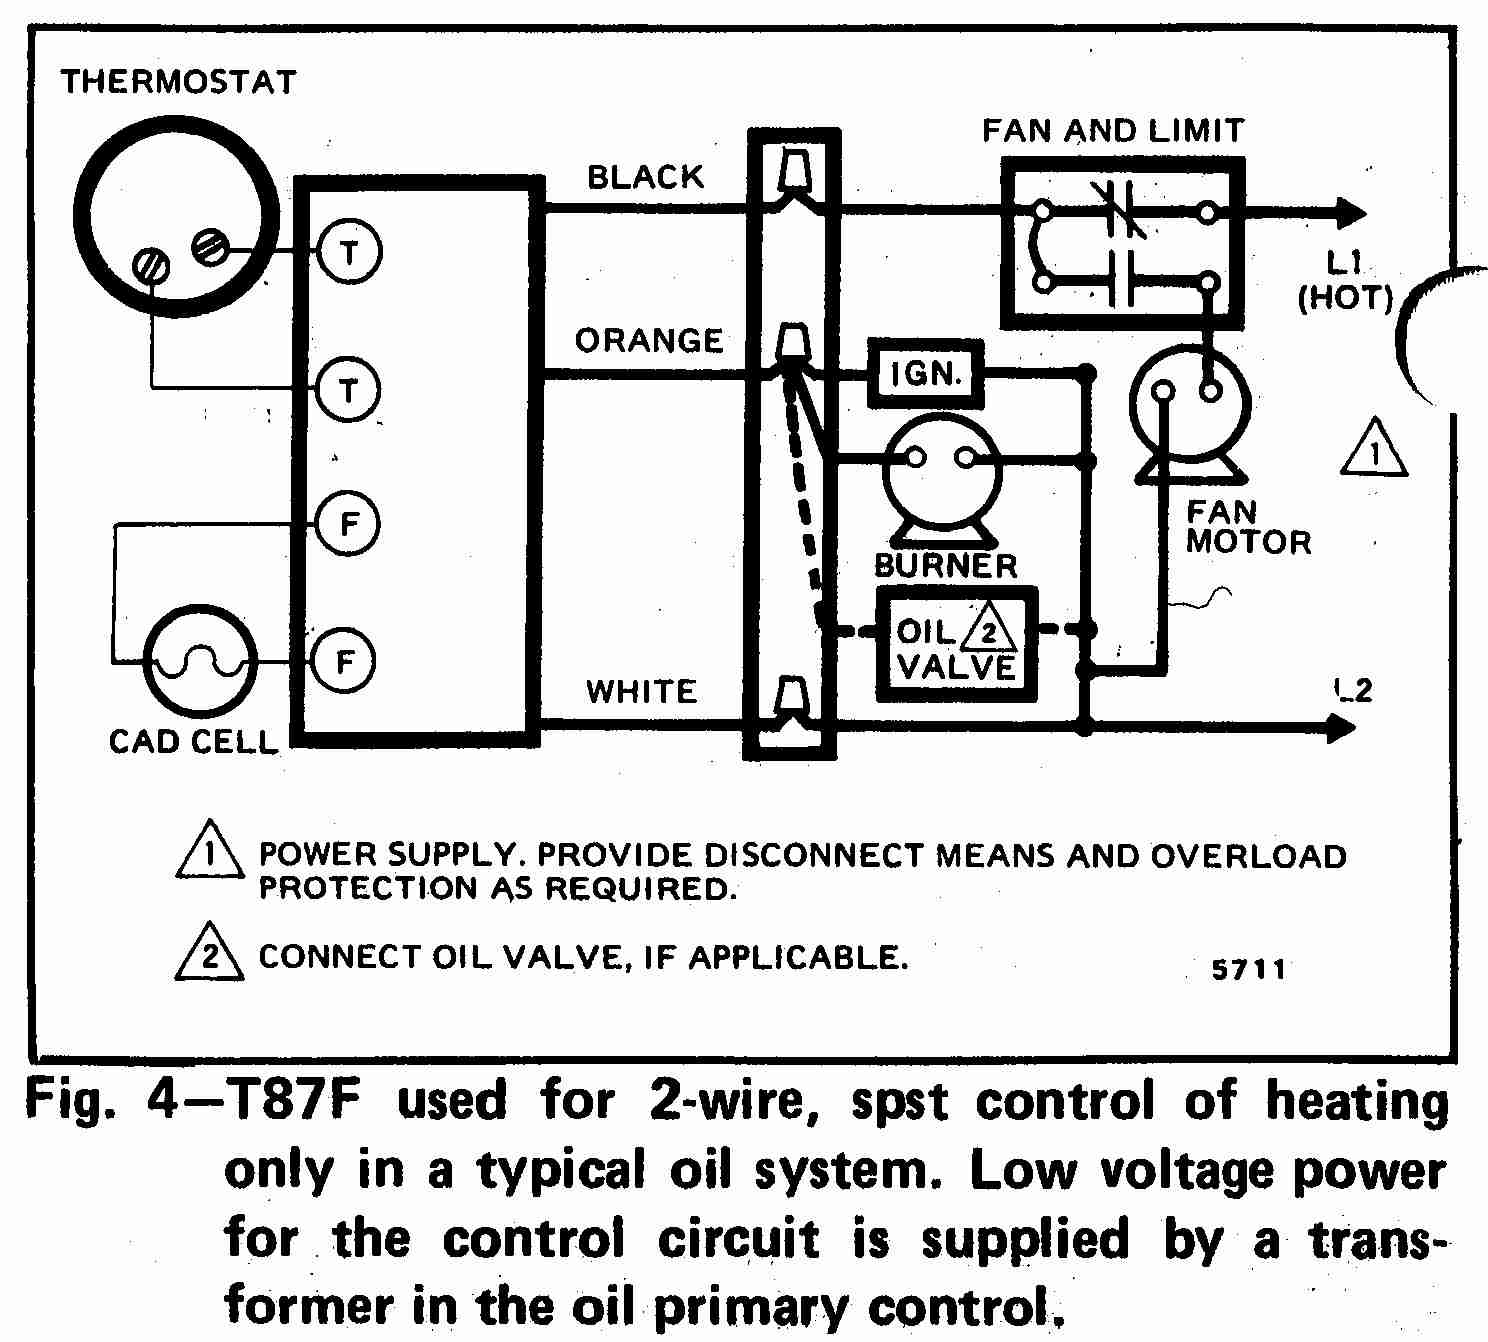 Room Thermostat Wiring Diagrams For Hvac Systems - Air Conditioner Thermostat Wiring Diagram